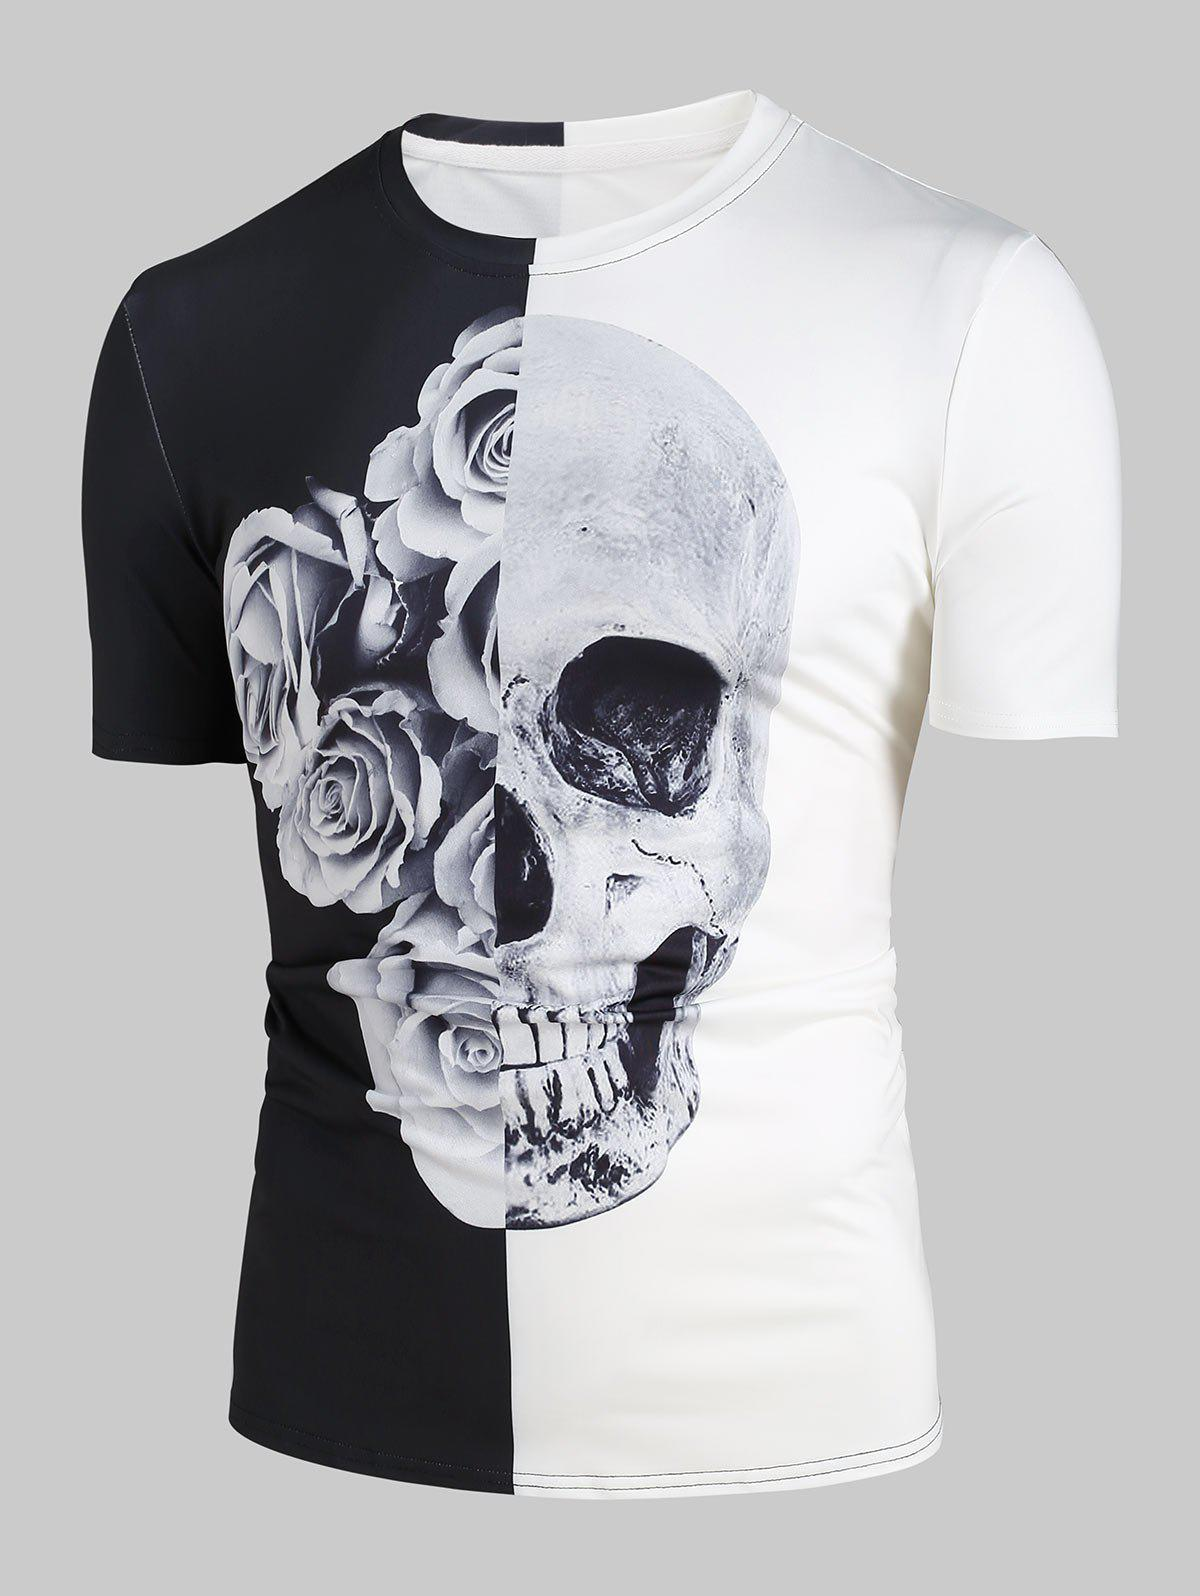 Hot Rose Skull 3D Print Two Tone T-shirt